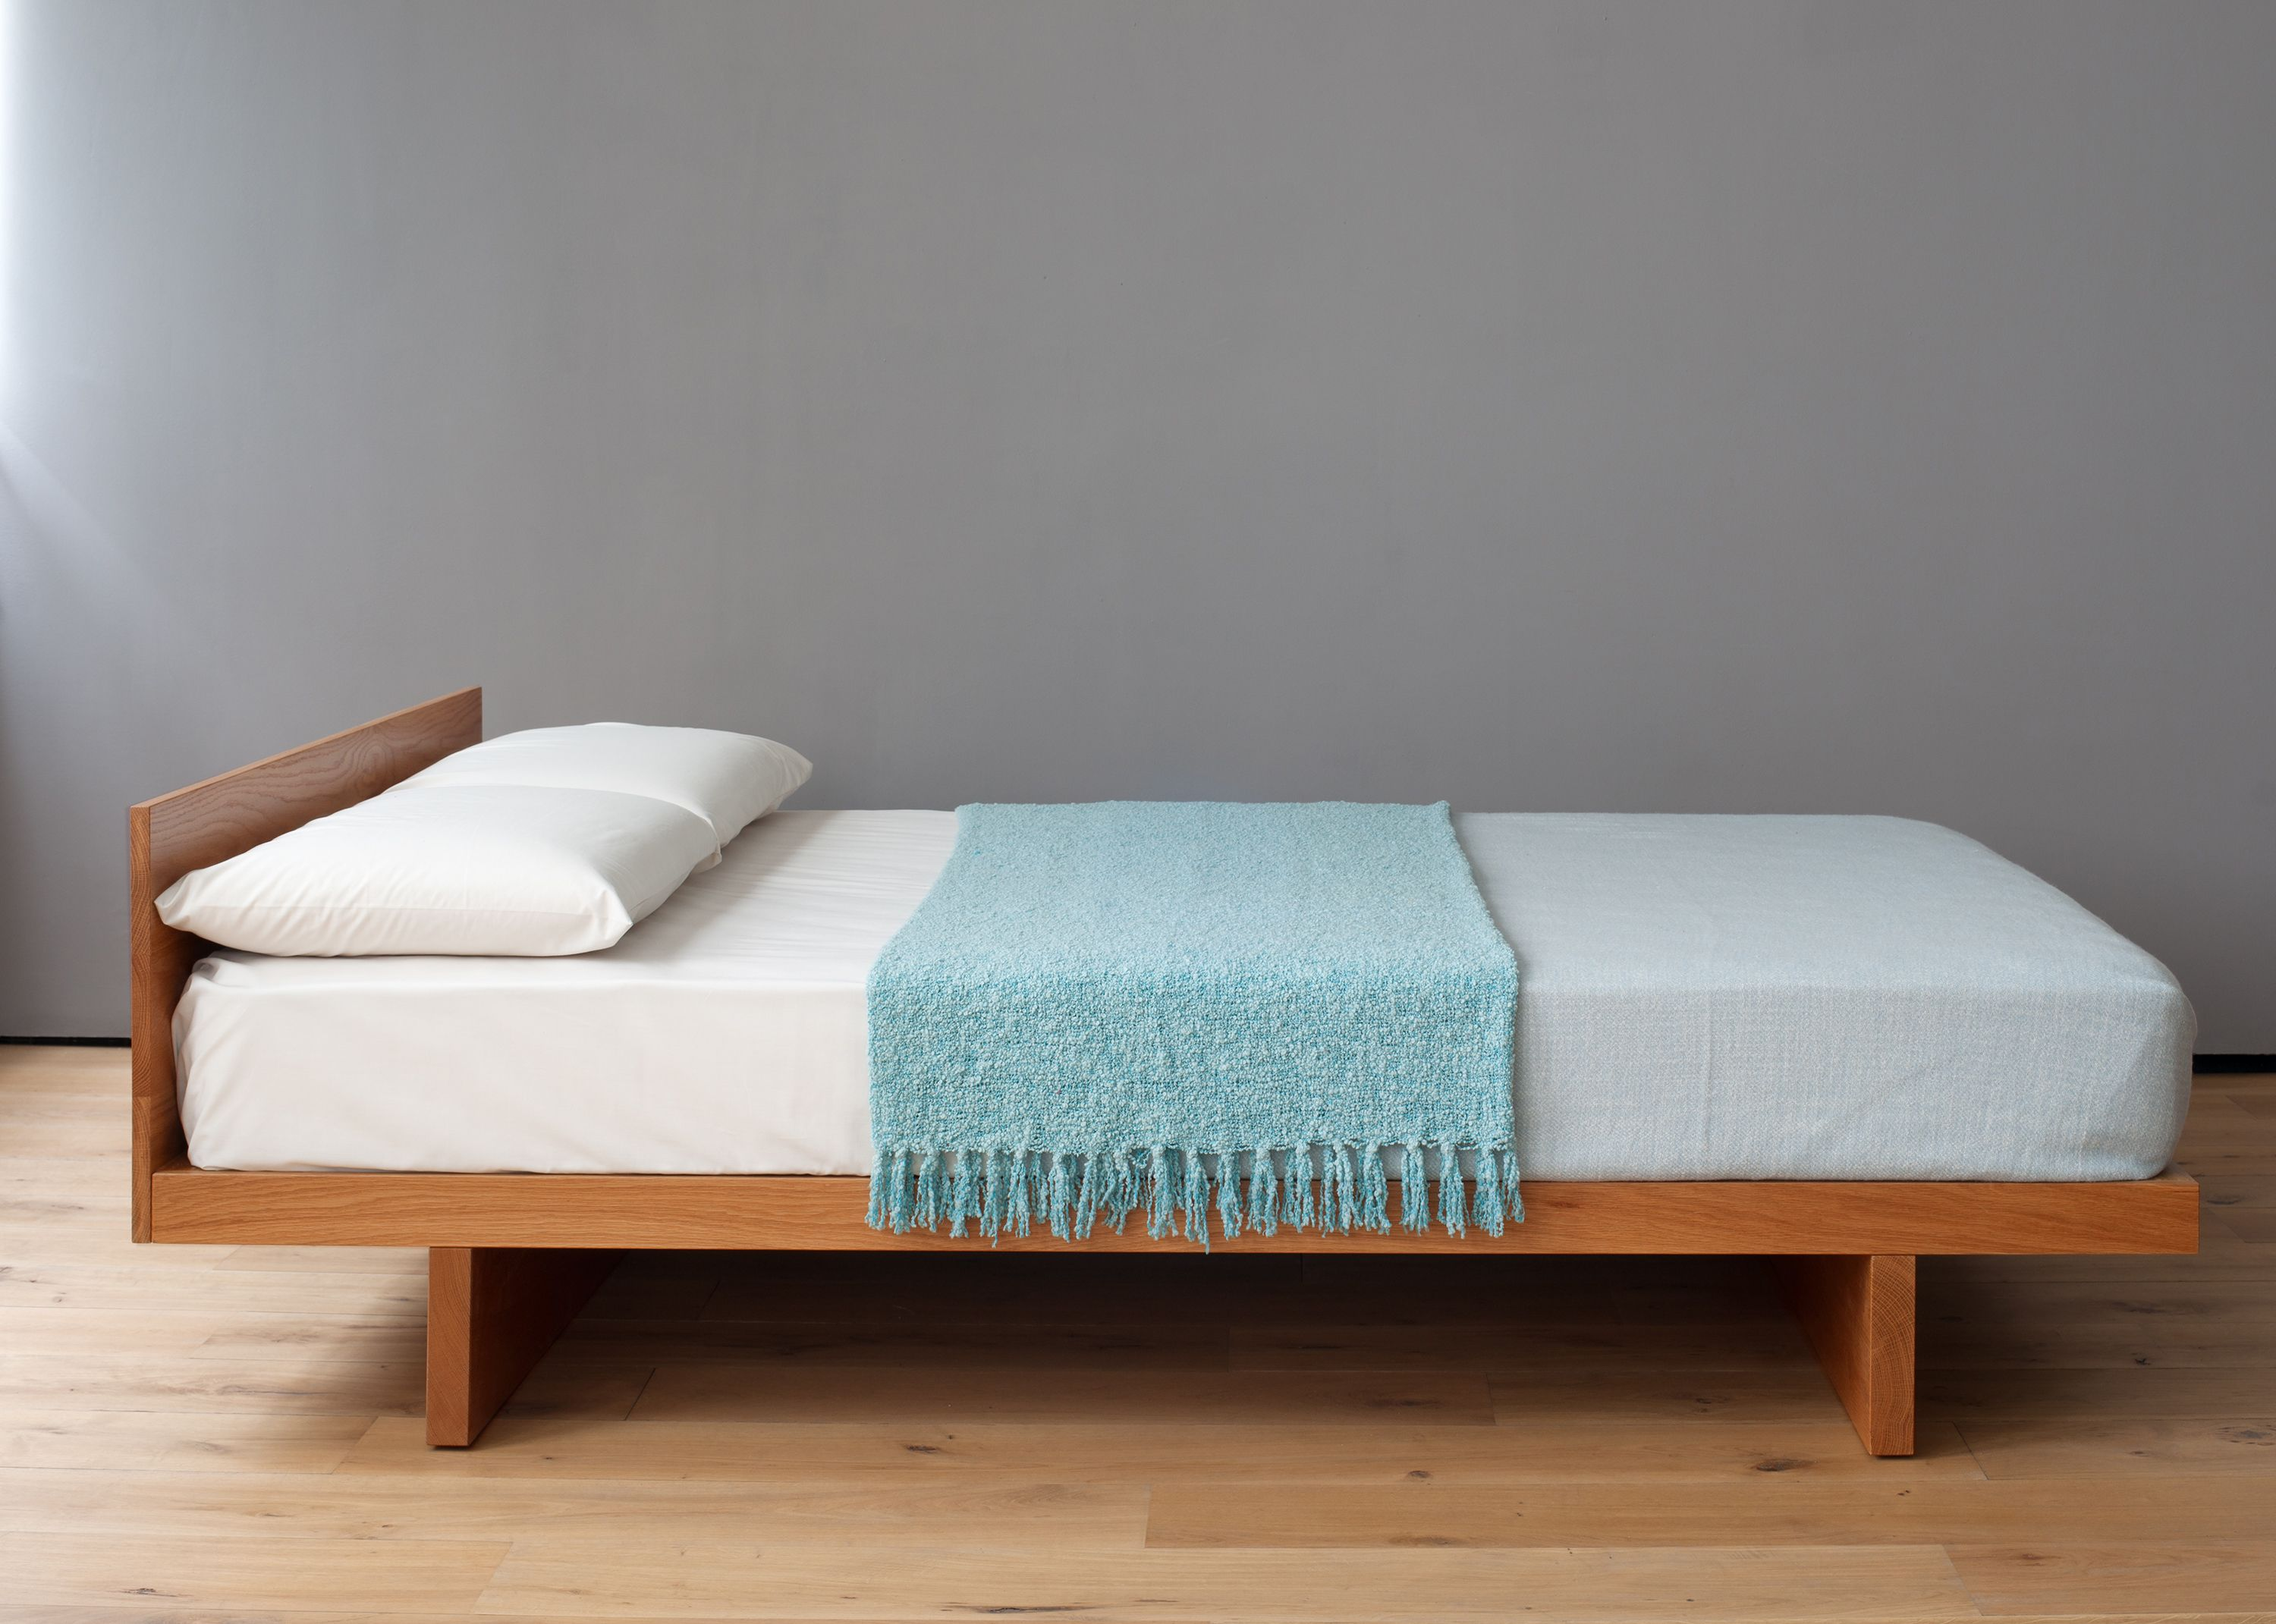 find solid cherry wood beds at natural bed company httpwww